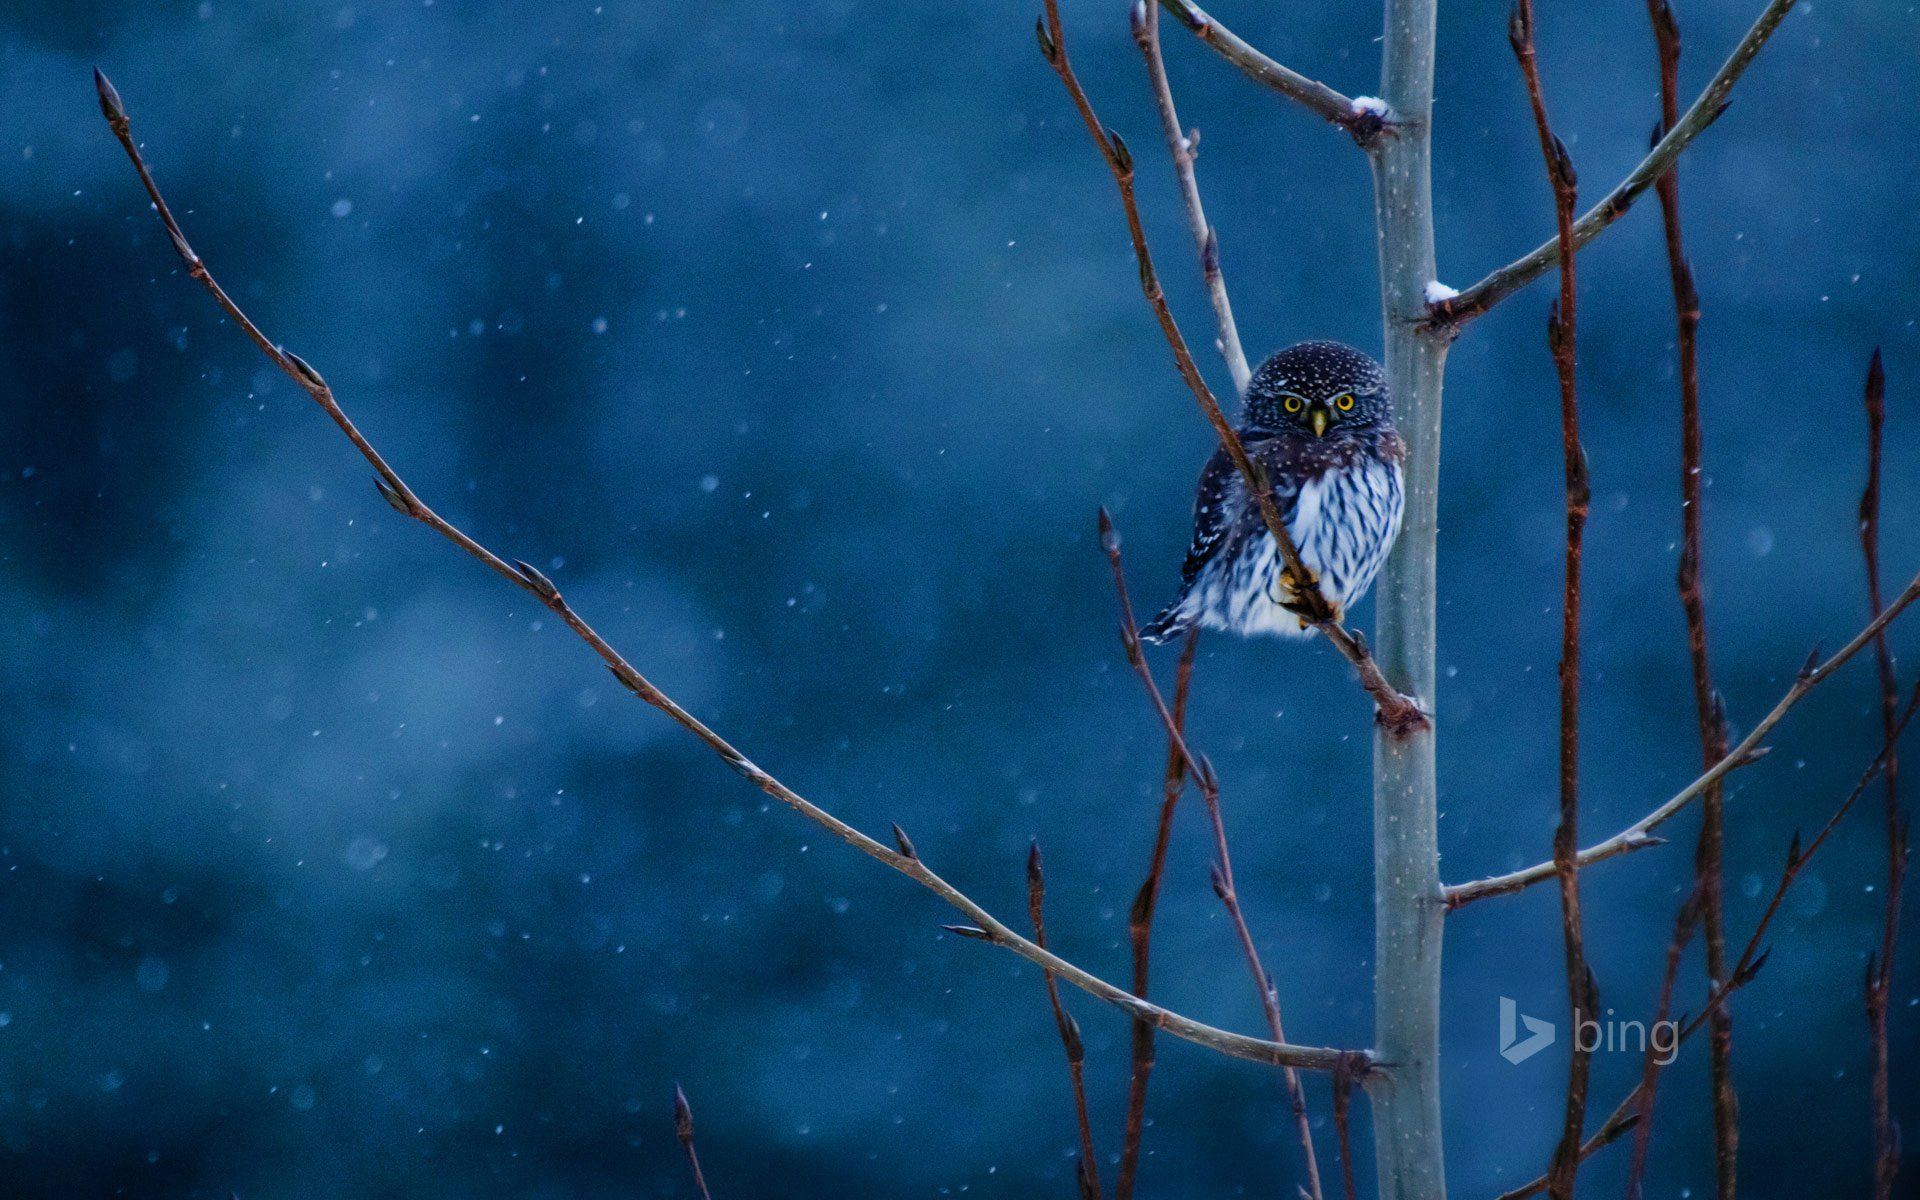 Download Wallpaper Night Animal - 0397eef72d1f44994f46bf49e006520c  Collection.jpg